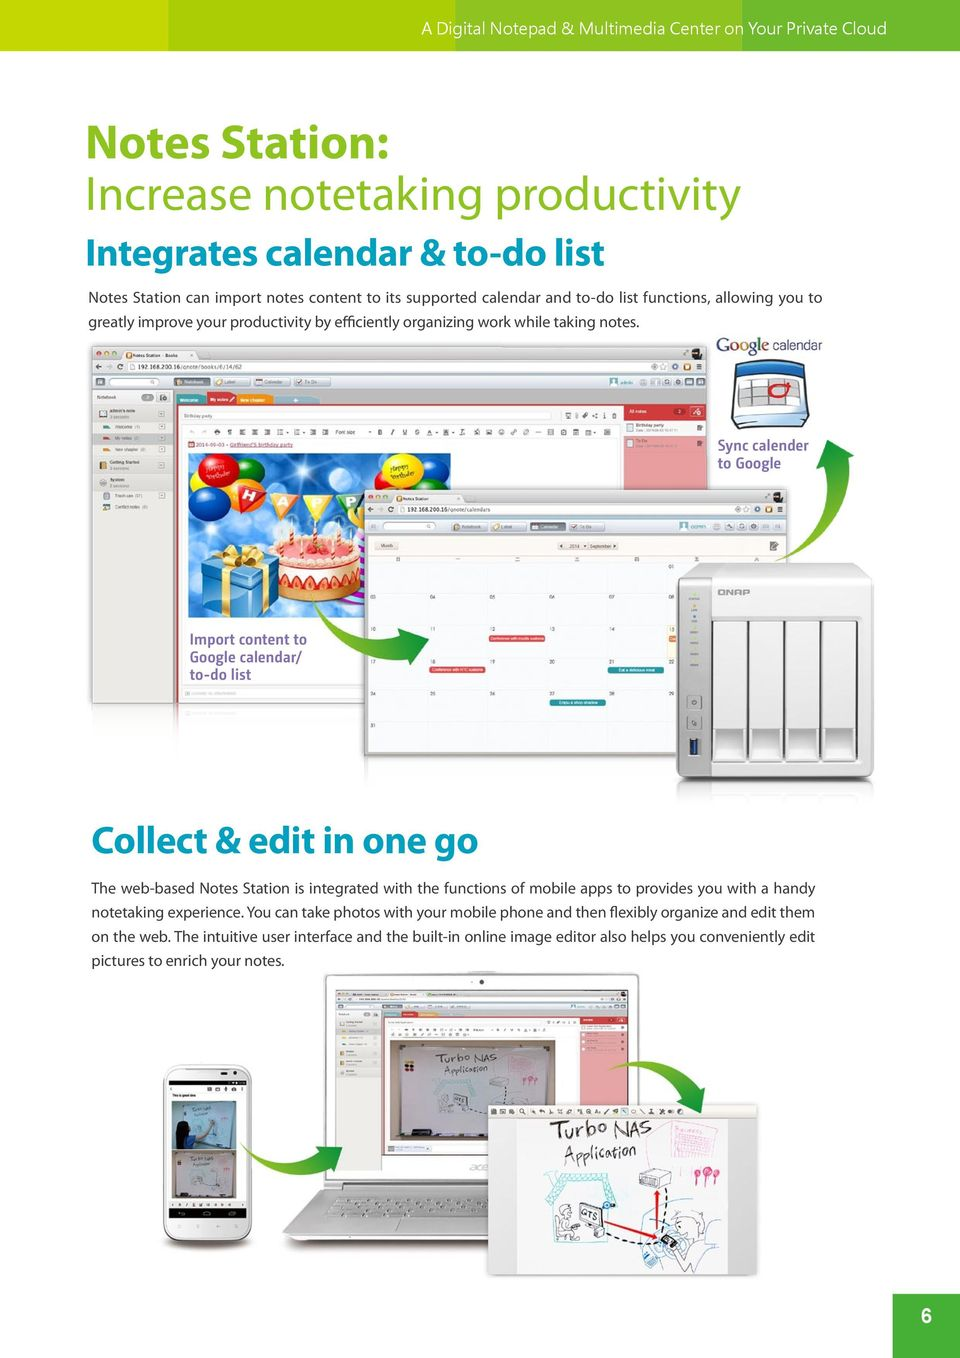 Sync calender to Google Import content to Google calendar/ to-do list Collect & edit in one go The web-based Notes Station is integrated with the functions of mobile apps to provides you with a